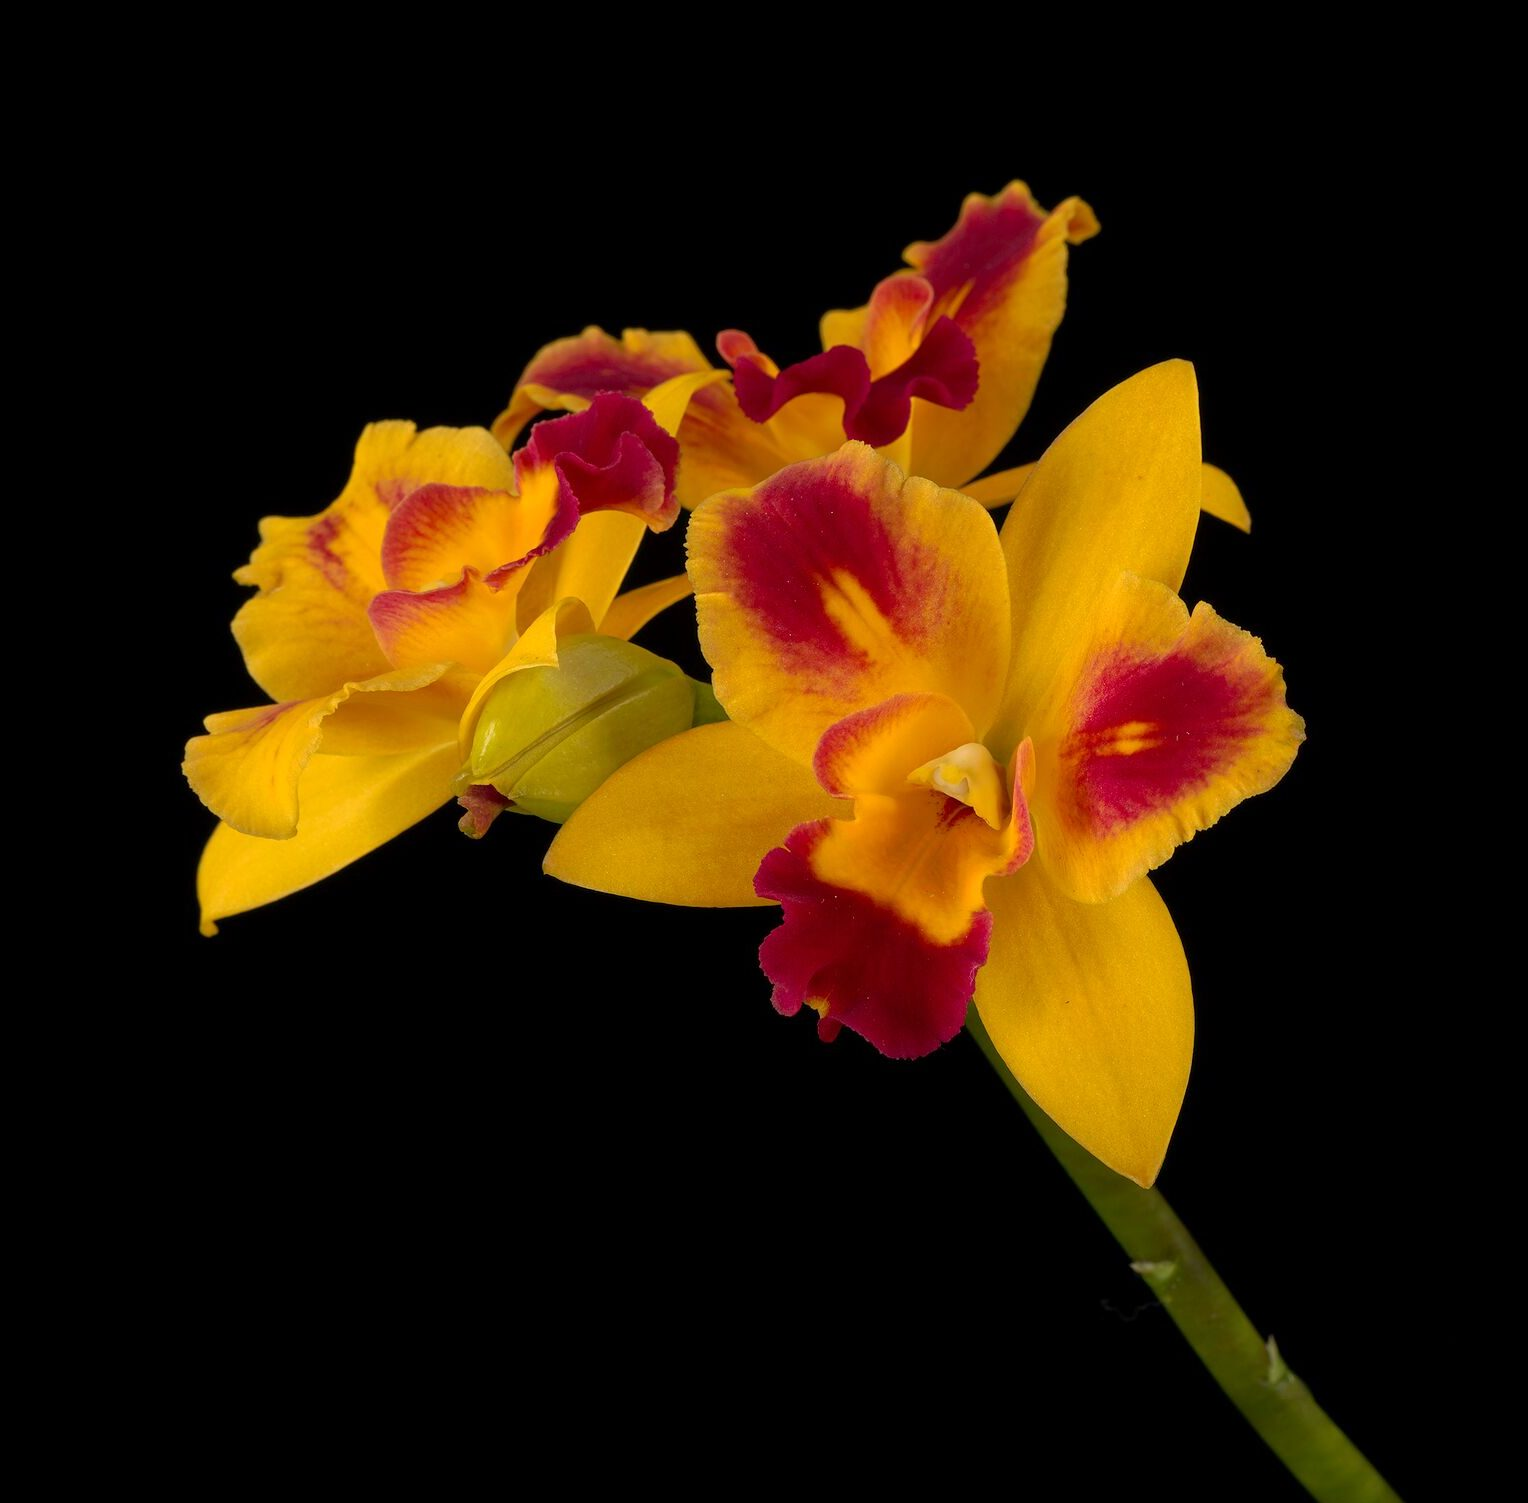 See thousands of orchids in incredible detail in the Smithsonian's newly digitized collection